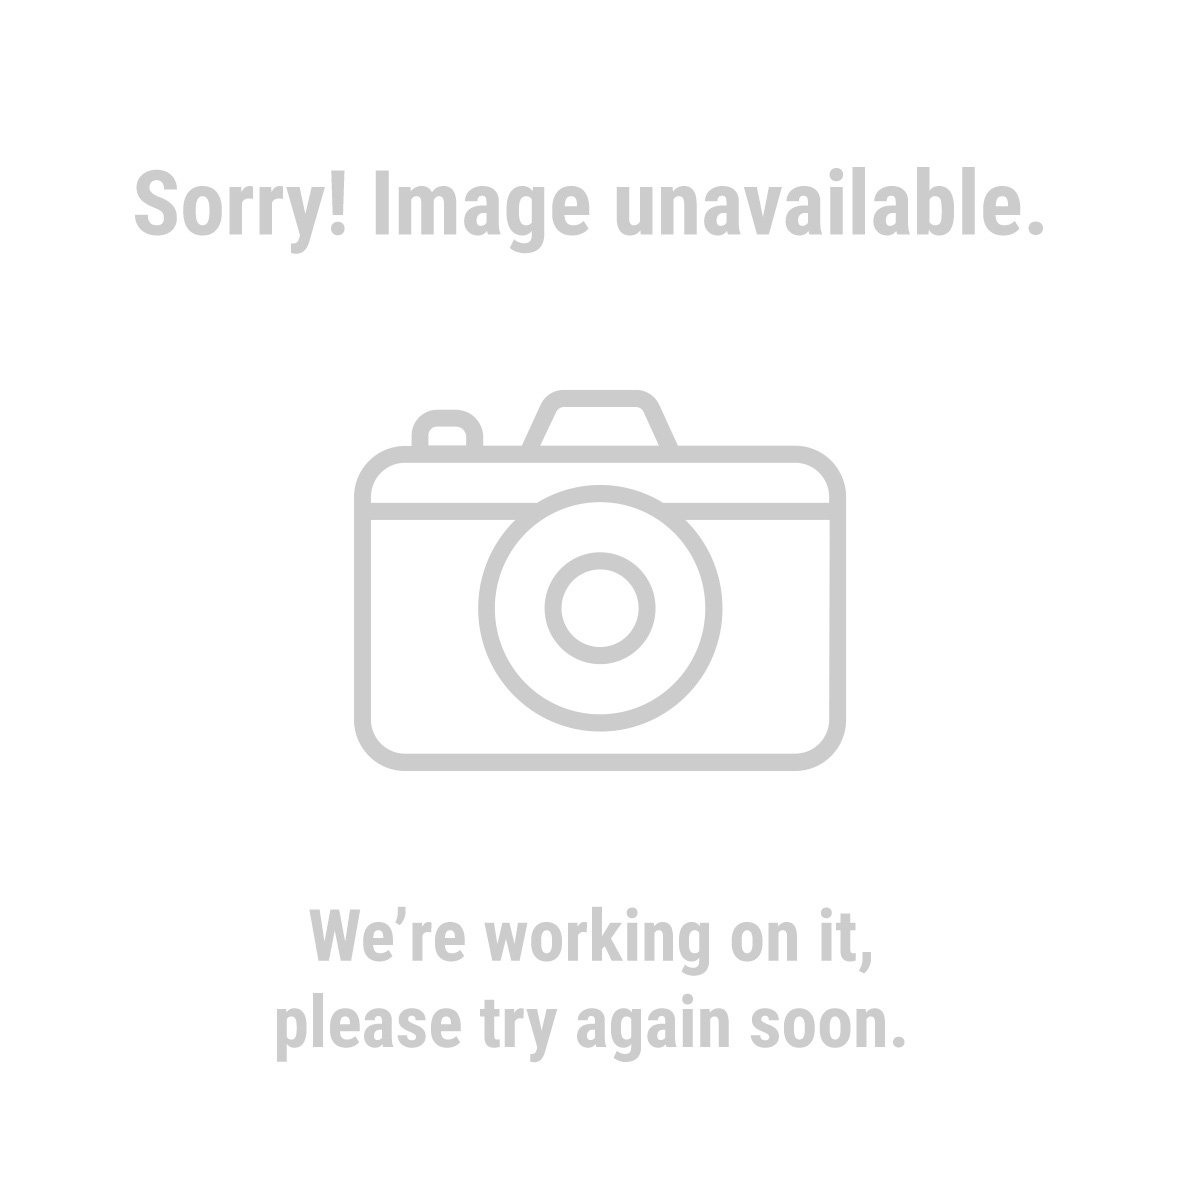 HARDY 68492 Pack of 100 White Nitrile Gloves, Size Extra large